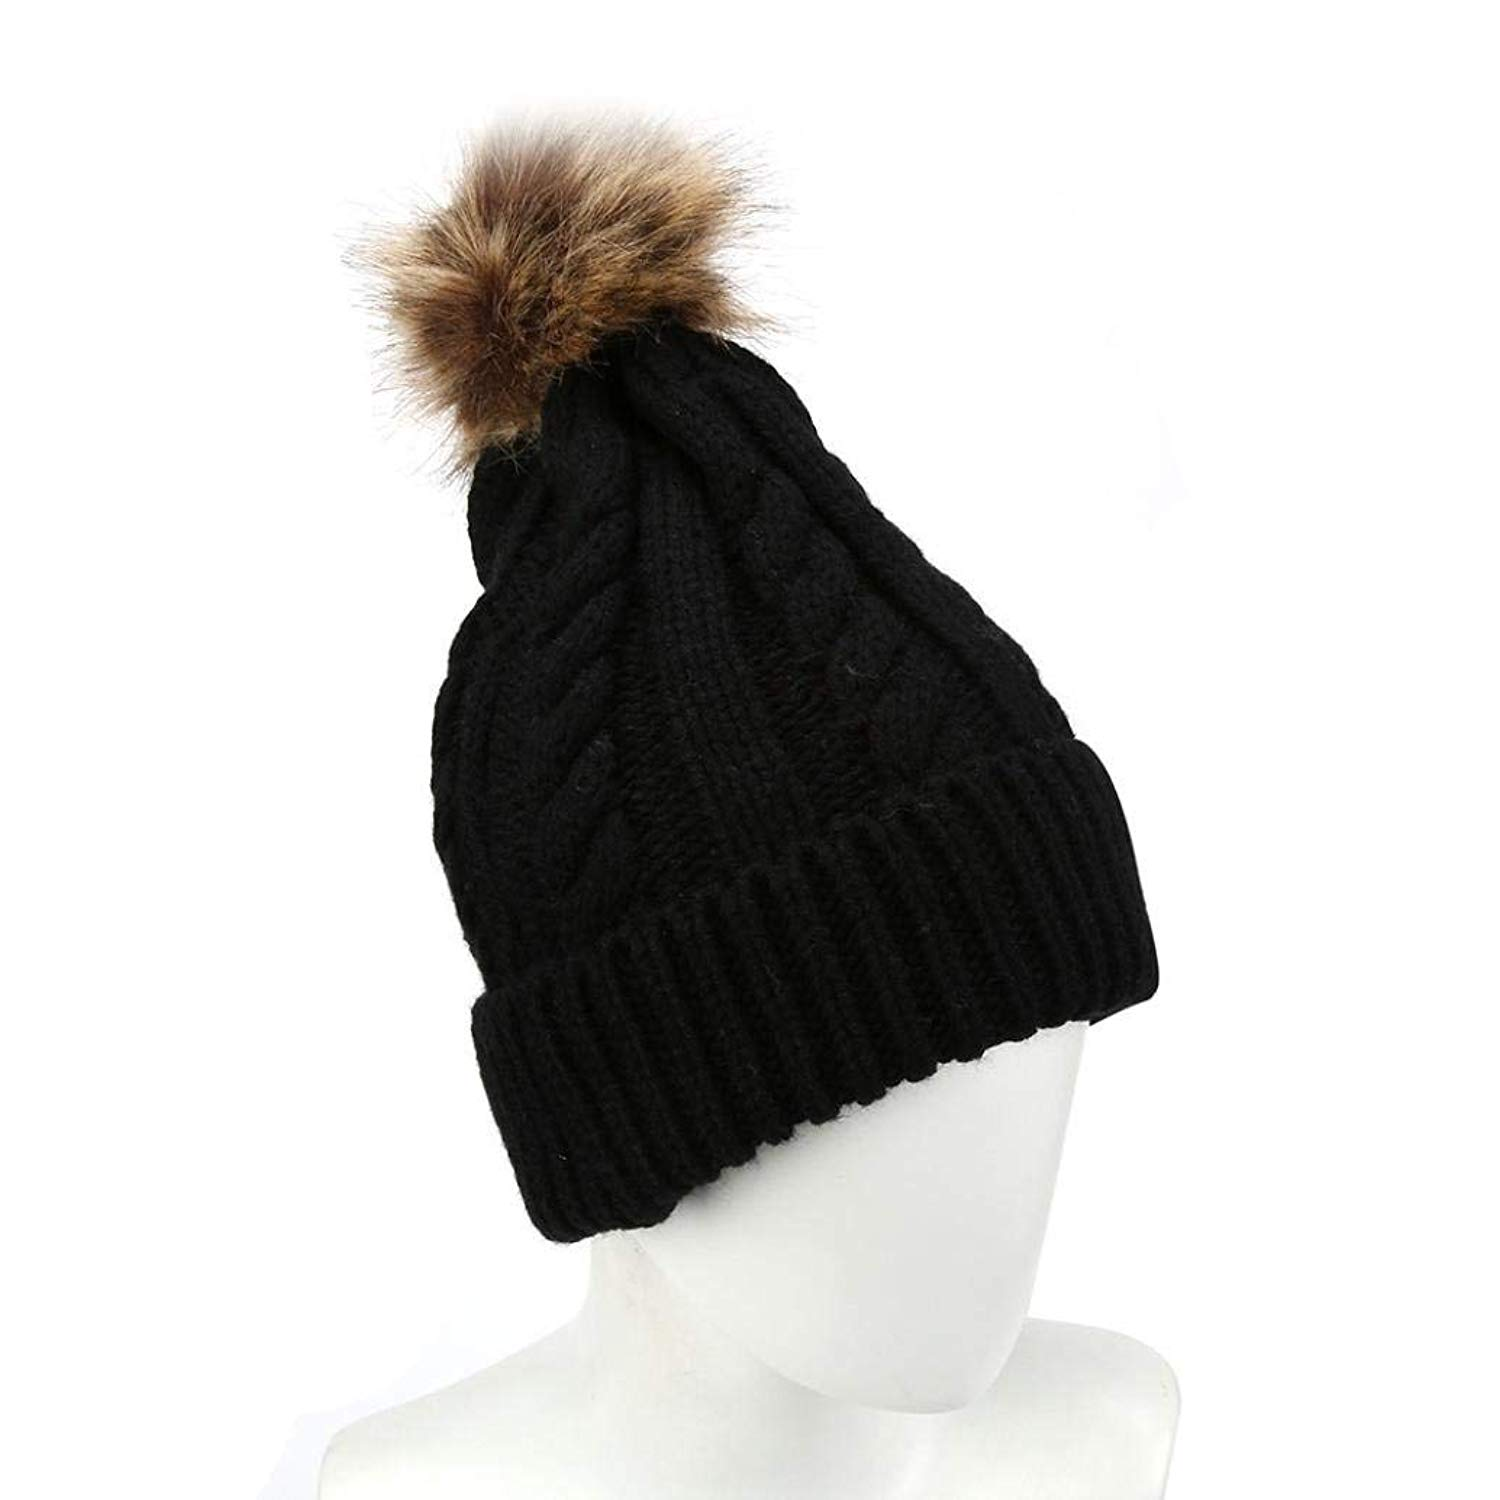 0af37075968 Get Quotations · Oksale® Women Girls Winter Pom Pom Crochet Knitted Wool Skull  Cap Beanie Hat